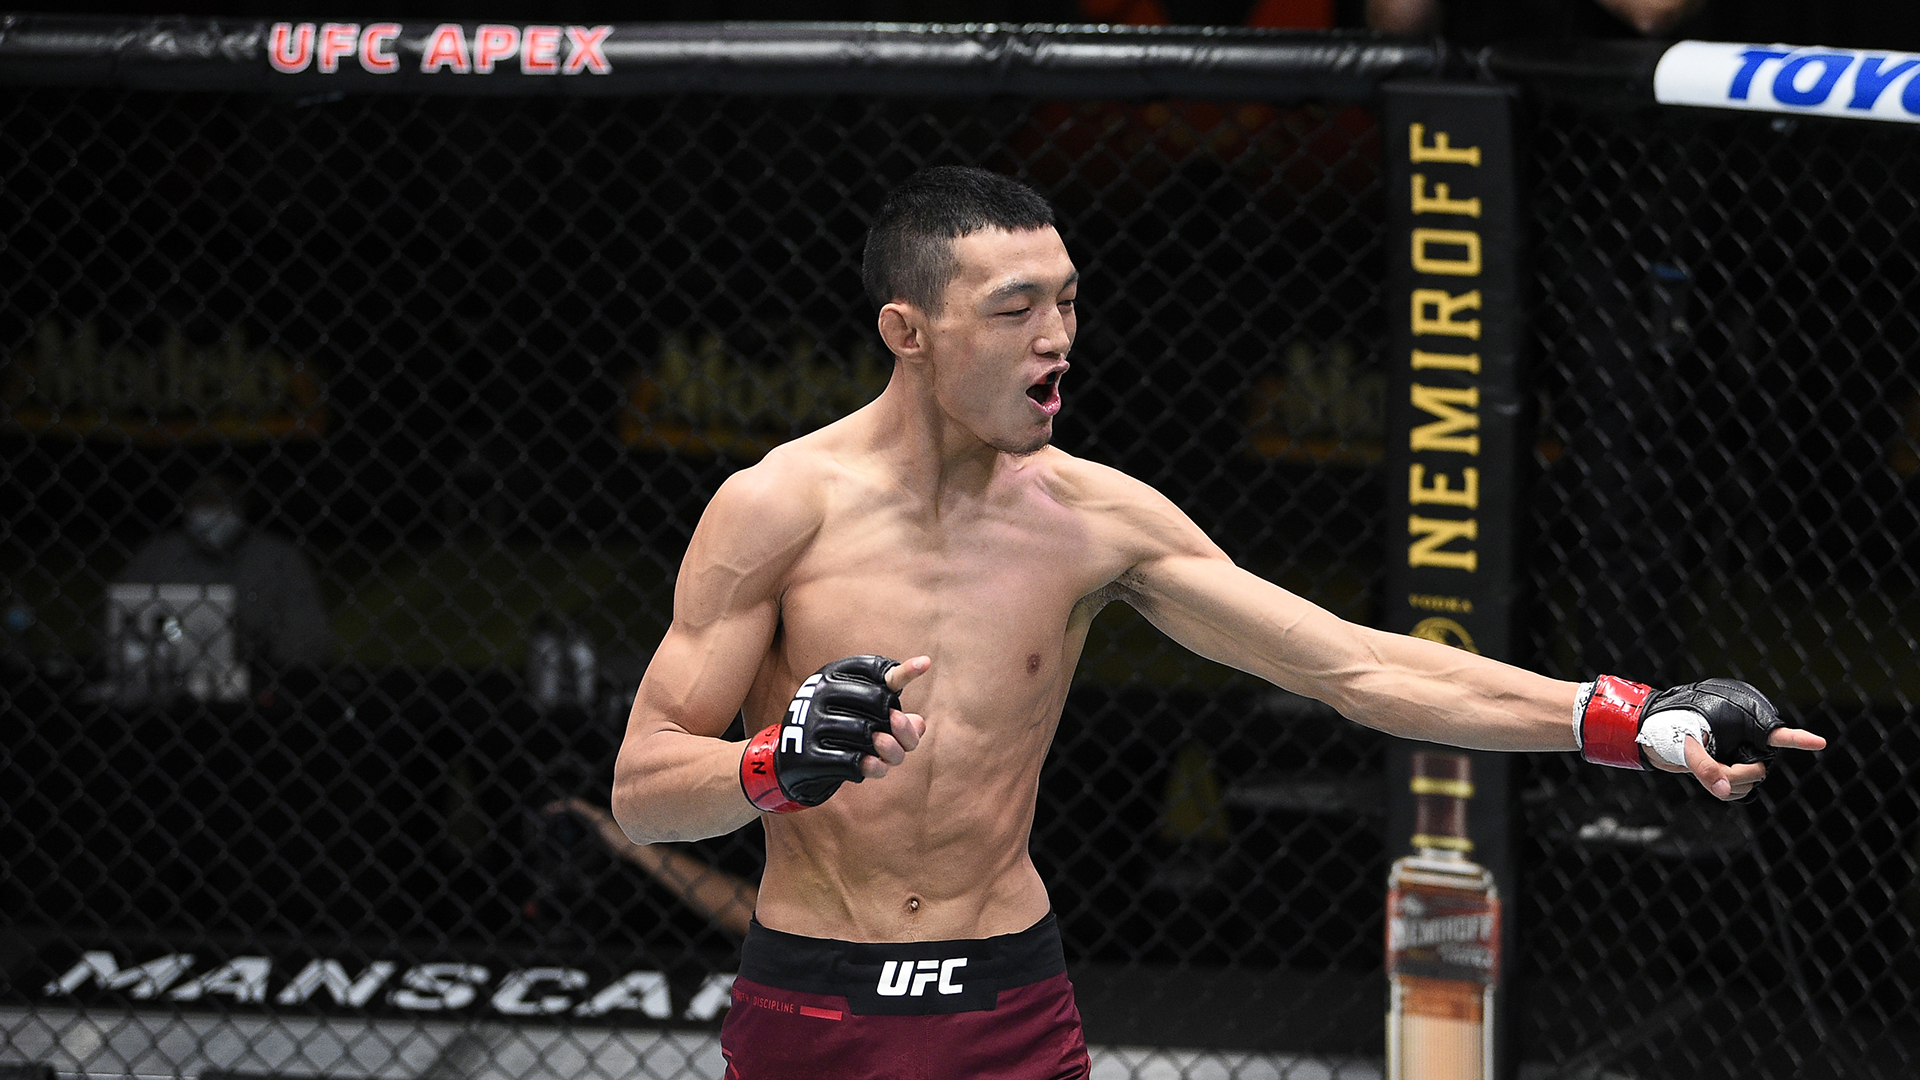 Sumudaerji of Tibet reacts after defeating Malcolm Gordon in their flyweight bout during the UFC Fight Night at UFC APEX on November 28, 2020 in Las Vegas, Nevada. (Photo by Chris Unger/Zuffa LLC)